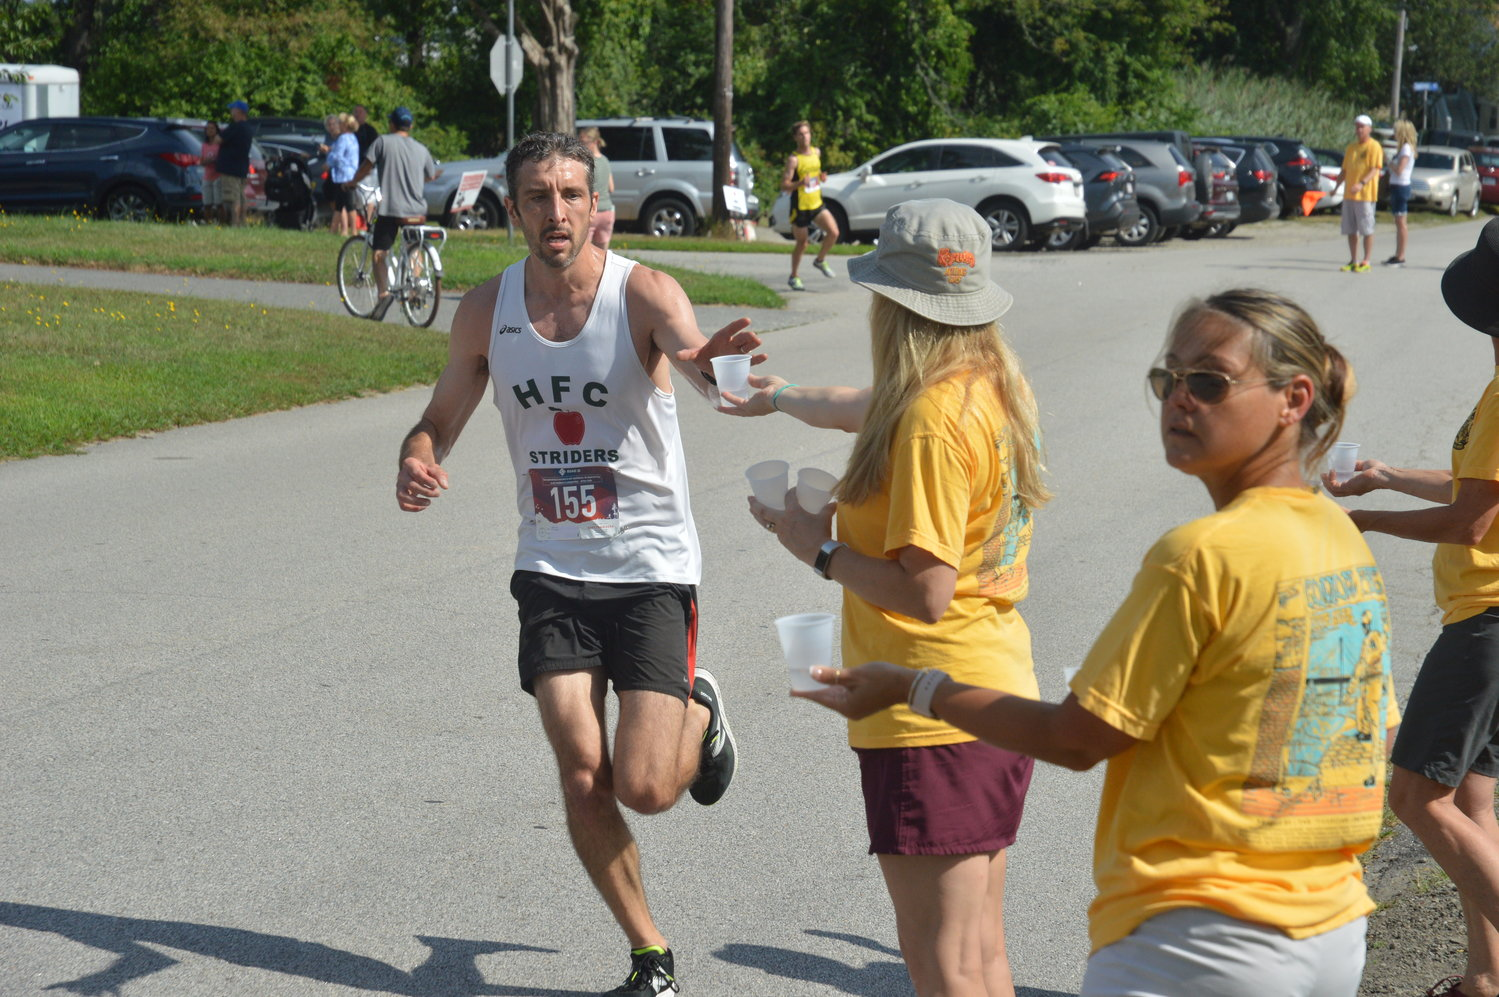 TJ Unger of Westwood, Mass., grabs a cup of water in the early stages of the race. He would finish in third place in a time of 27:59.